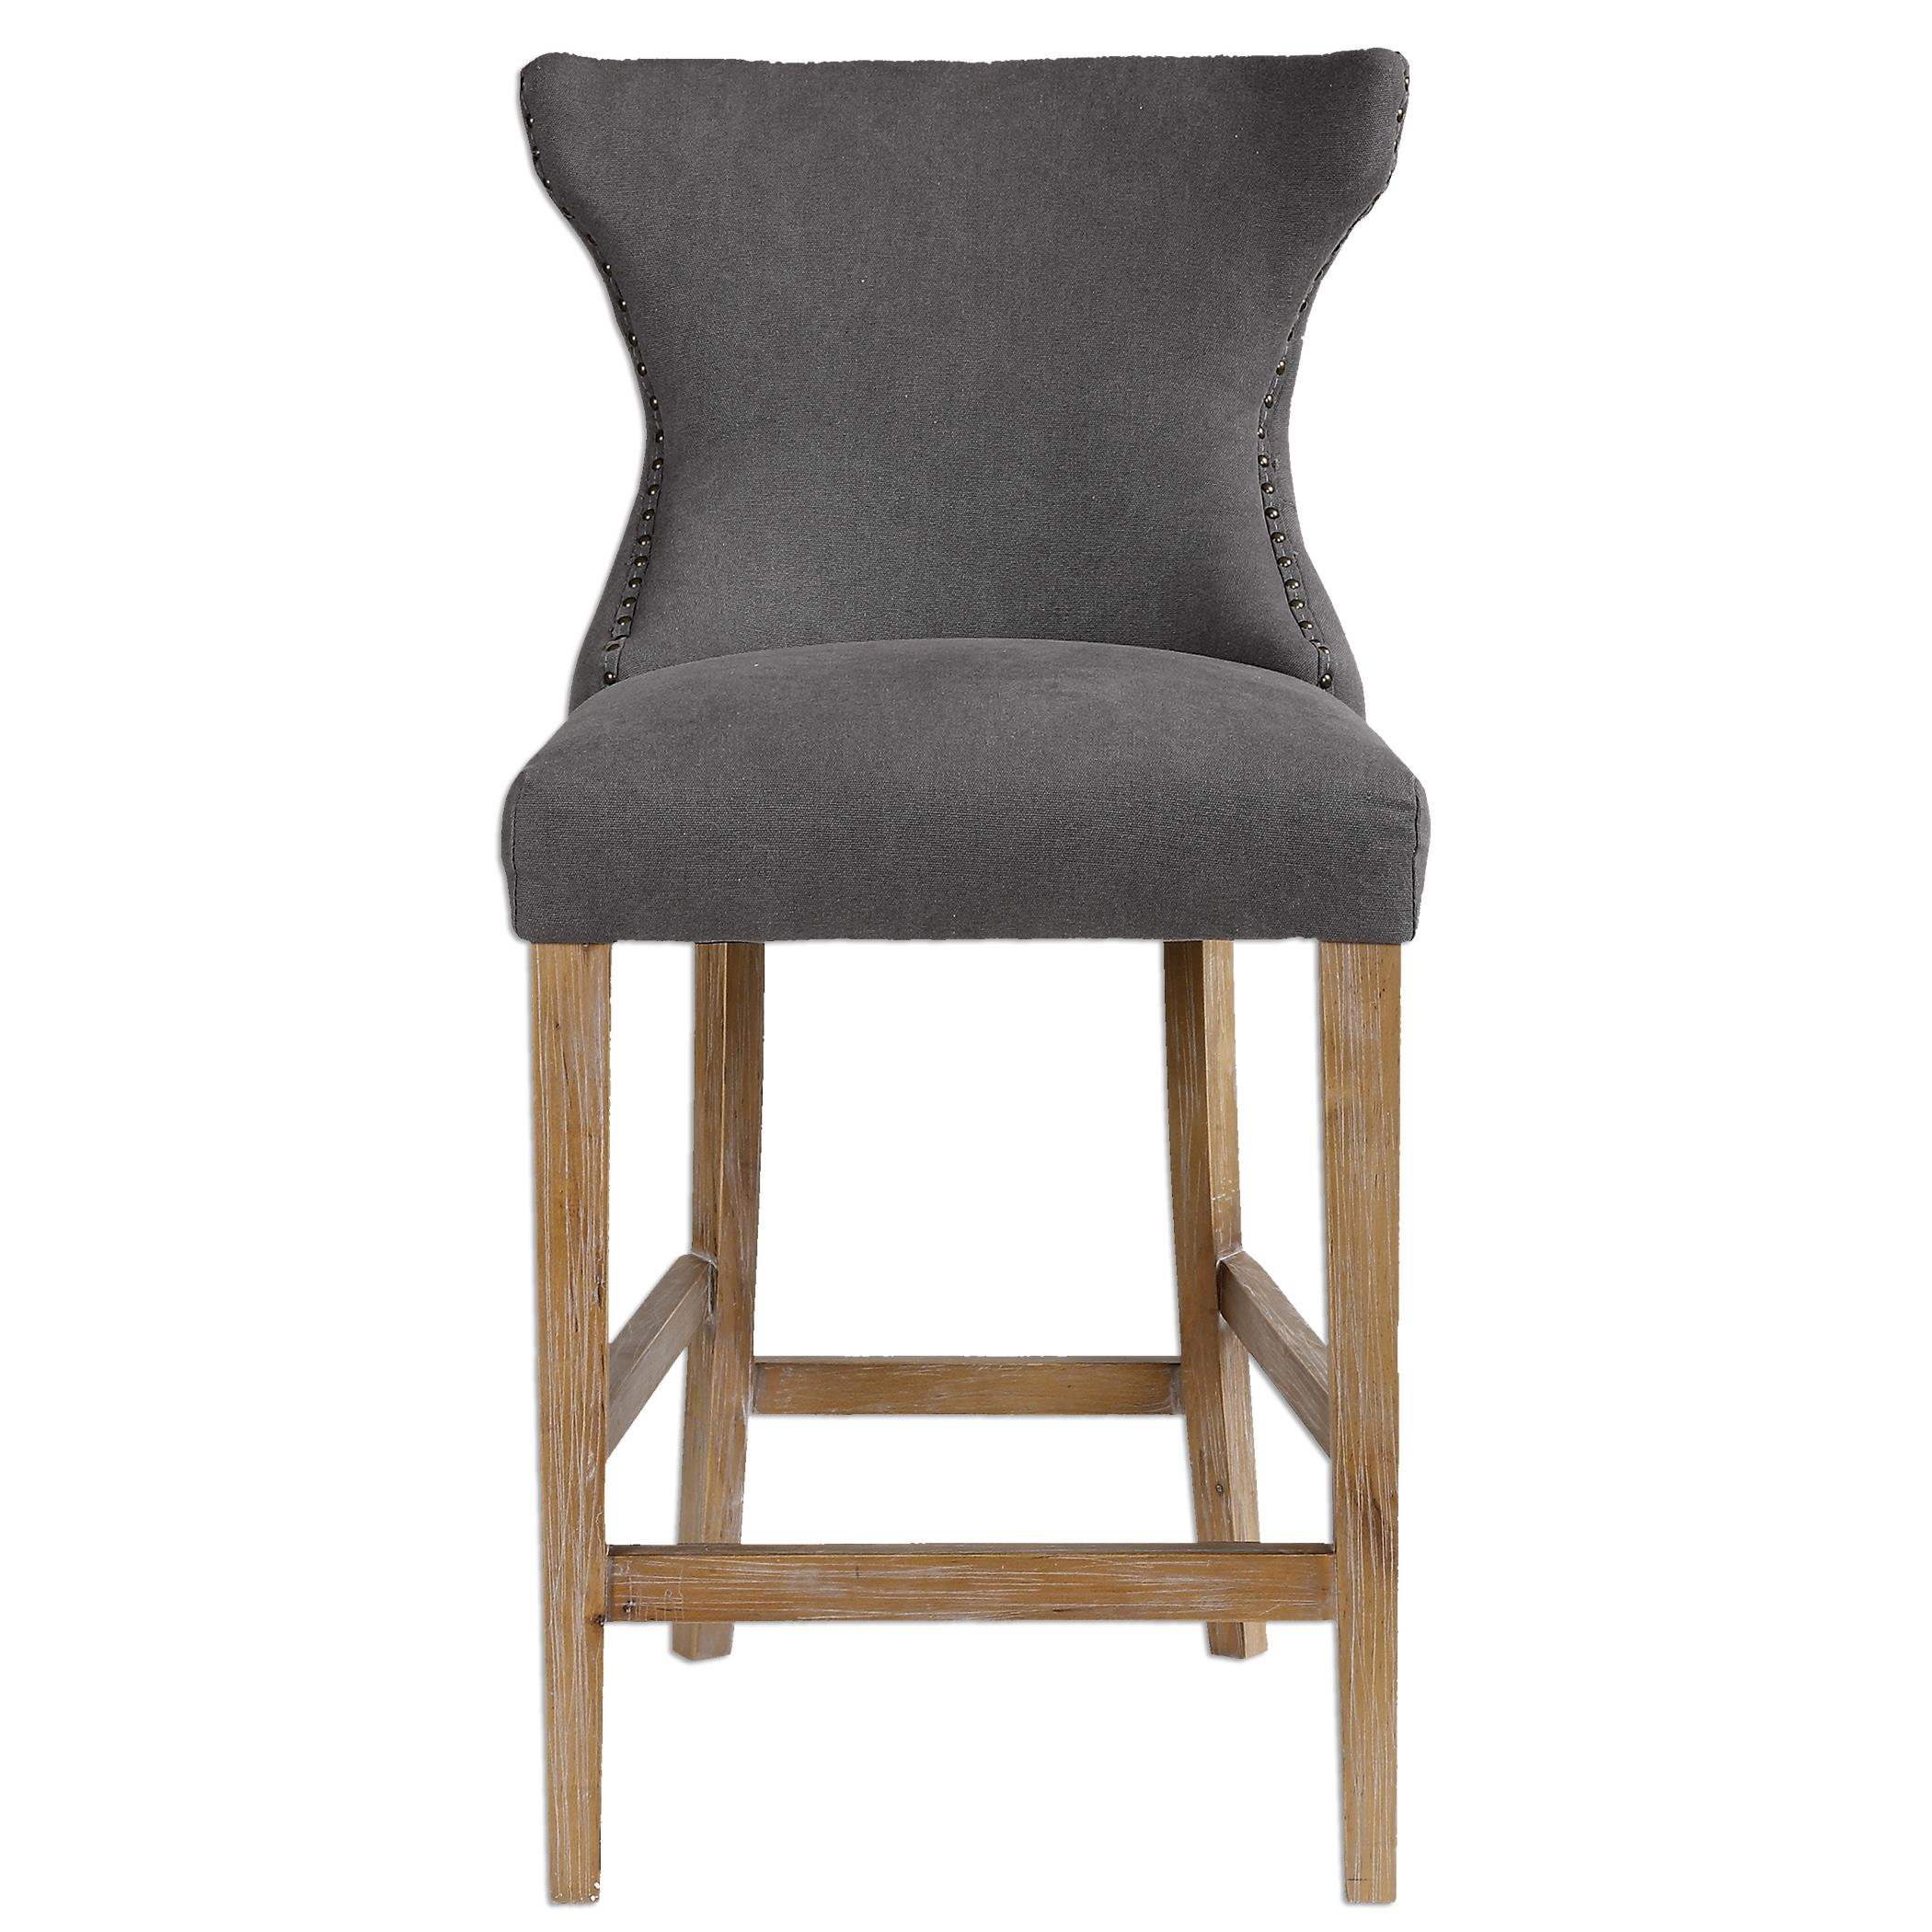 Accent Furniture - Stools Gamlin Gray Counter Stool by Uttermost at Del Sol Furniture